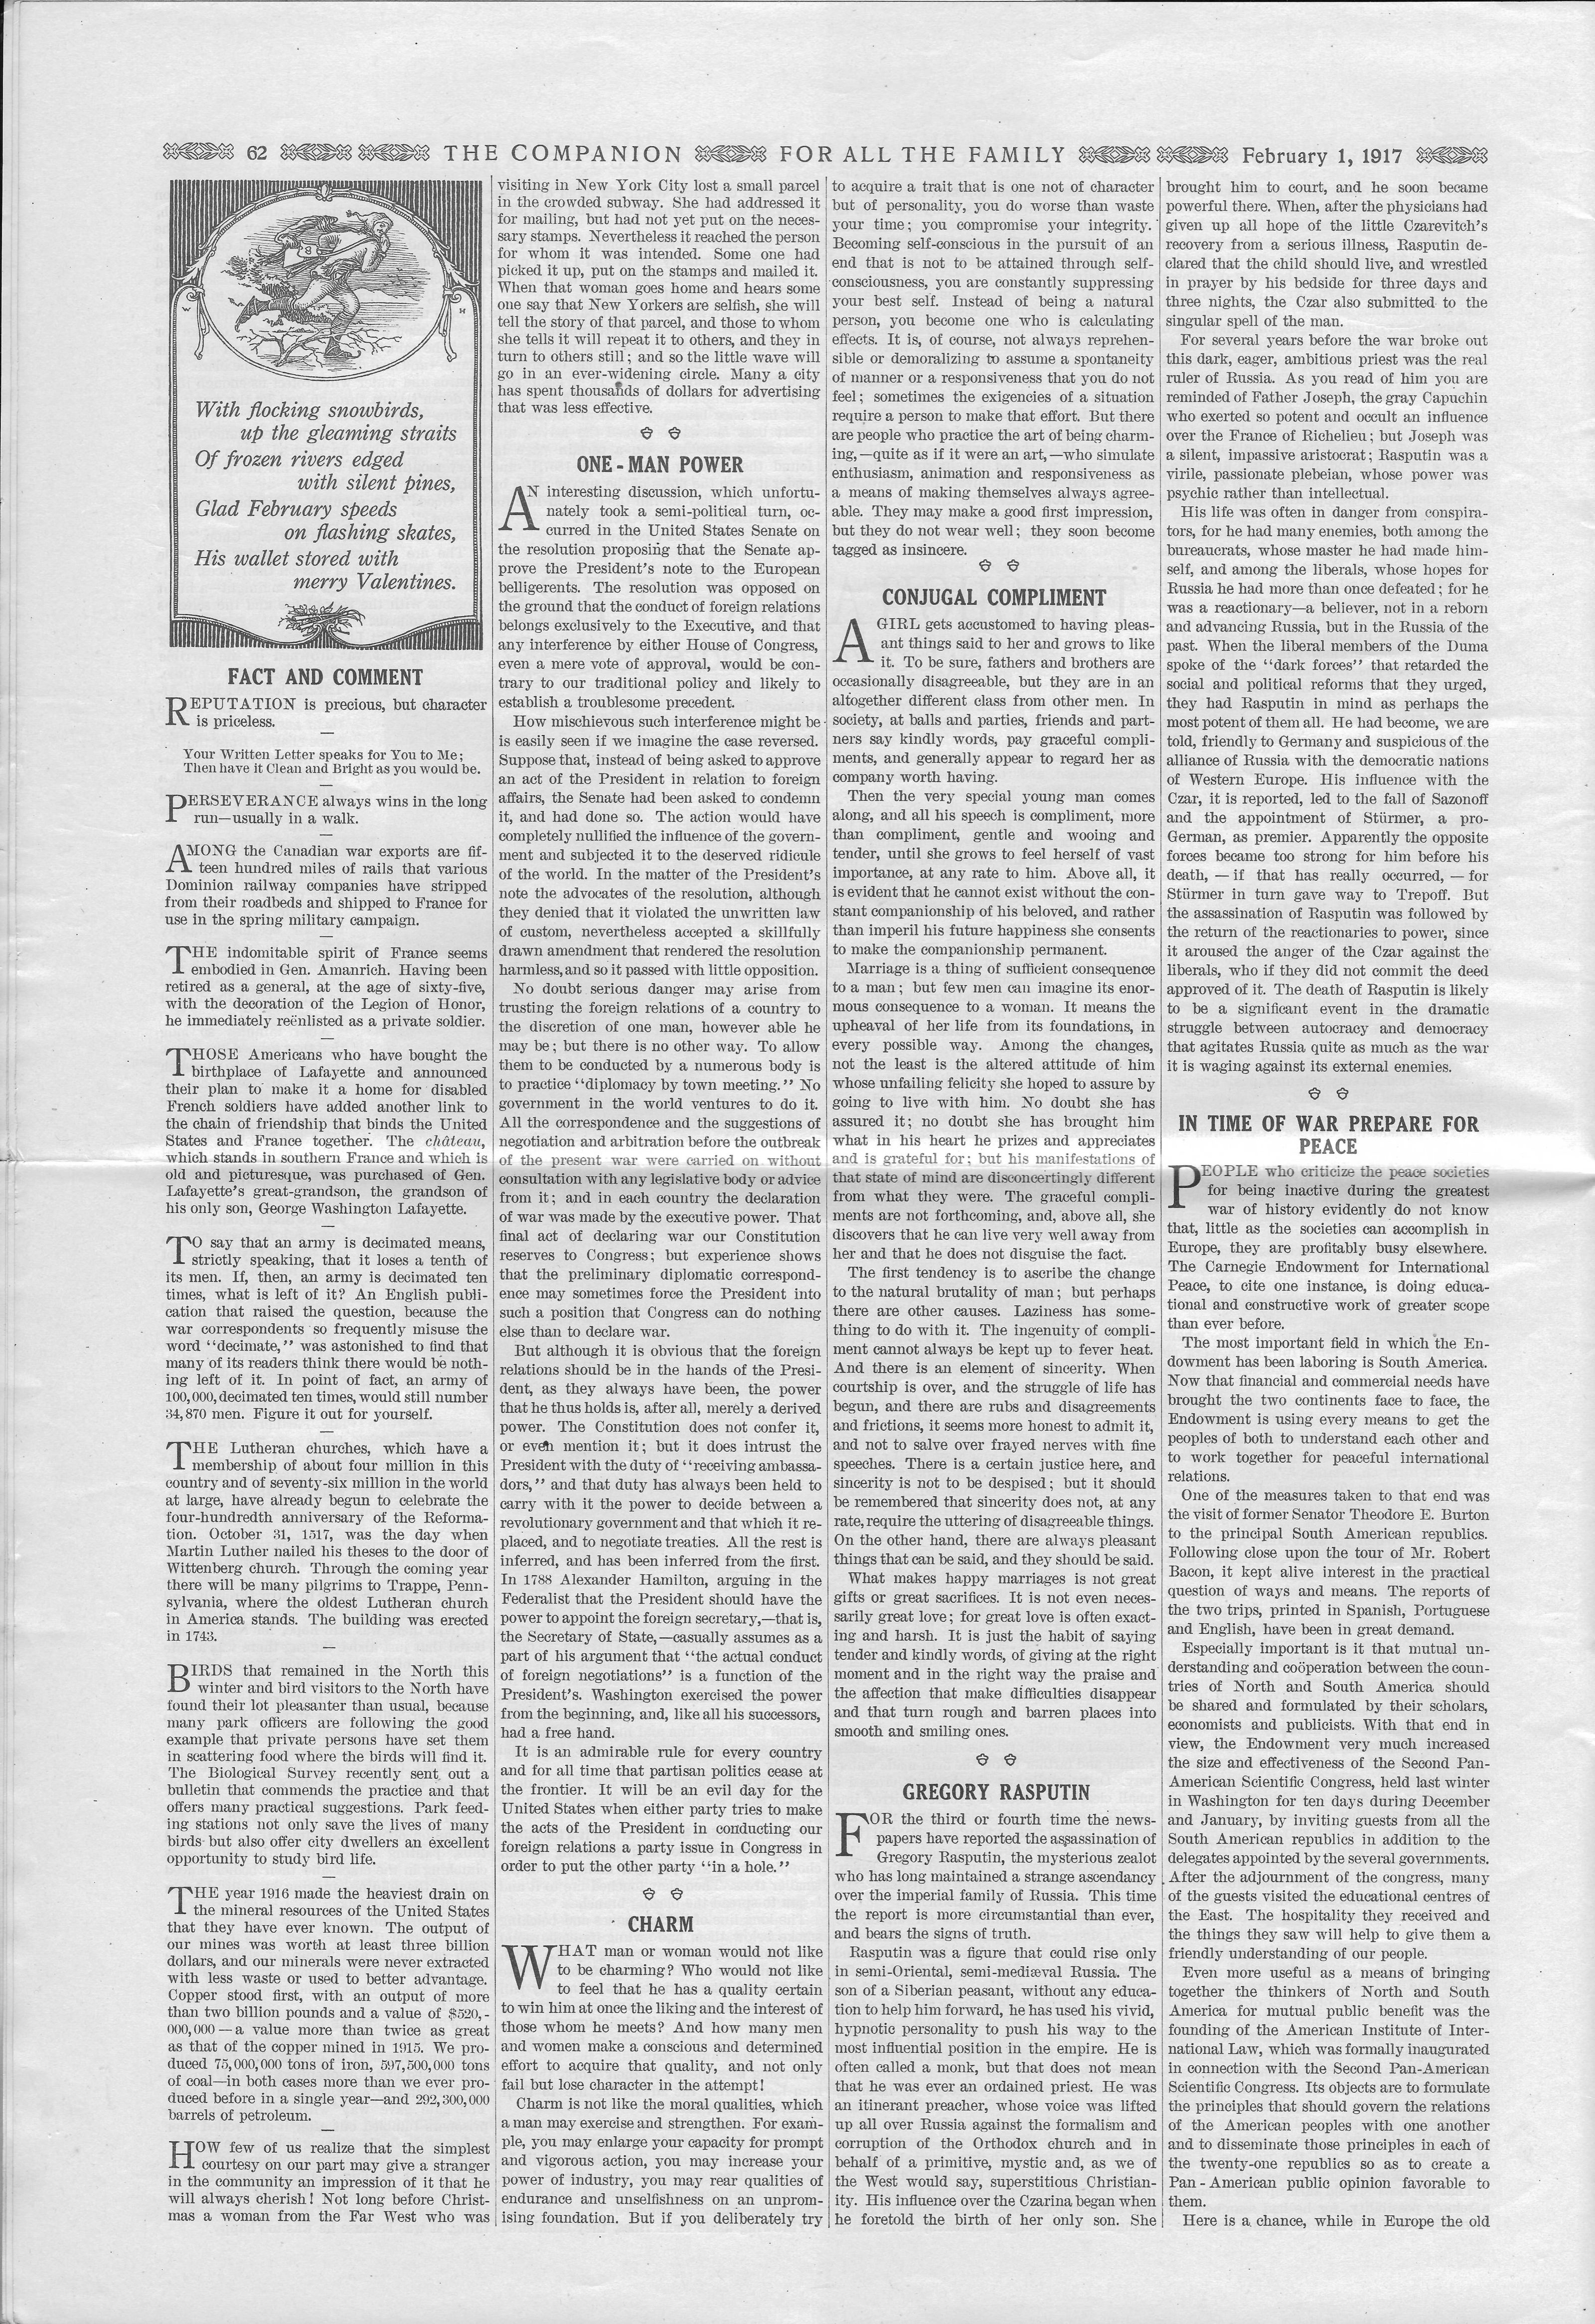 The Youth's Companion - February 1, 1917 - Page 62